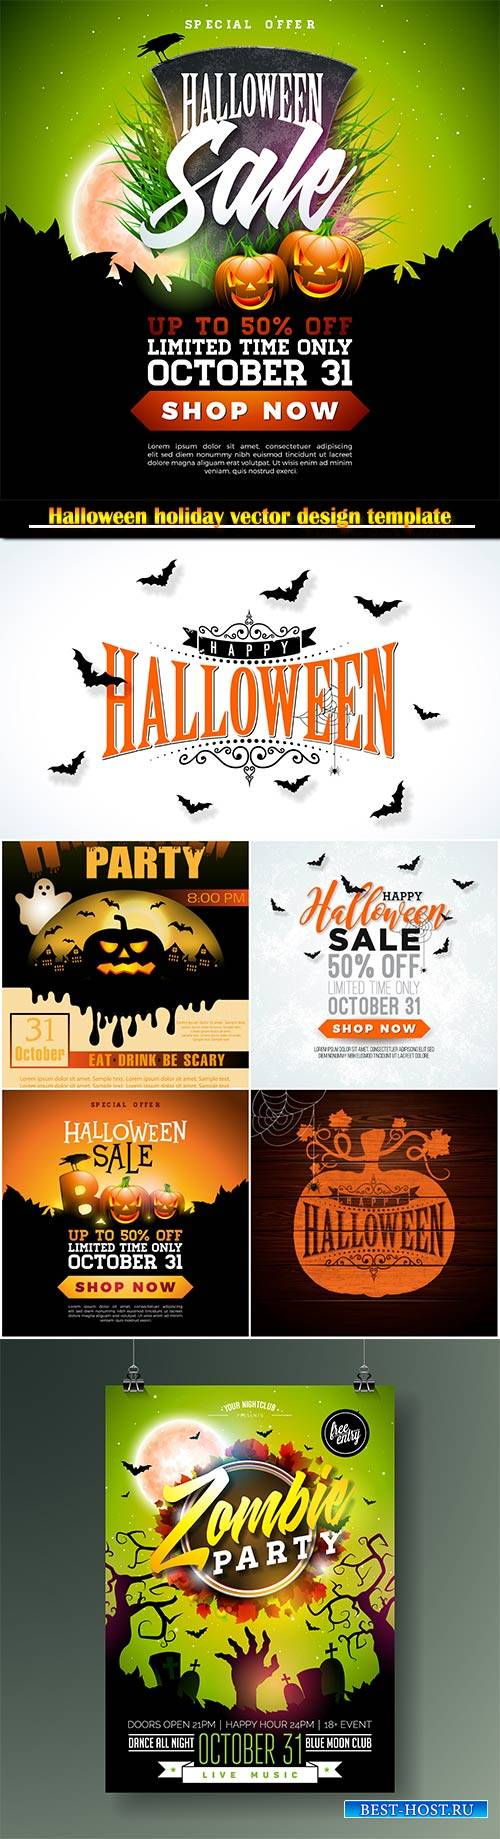 Halloween holiday vector design template # 5